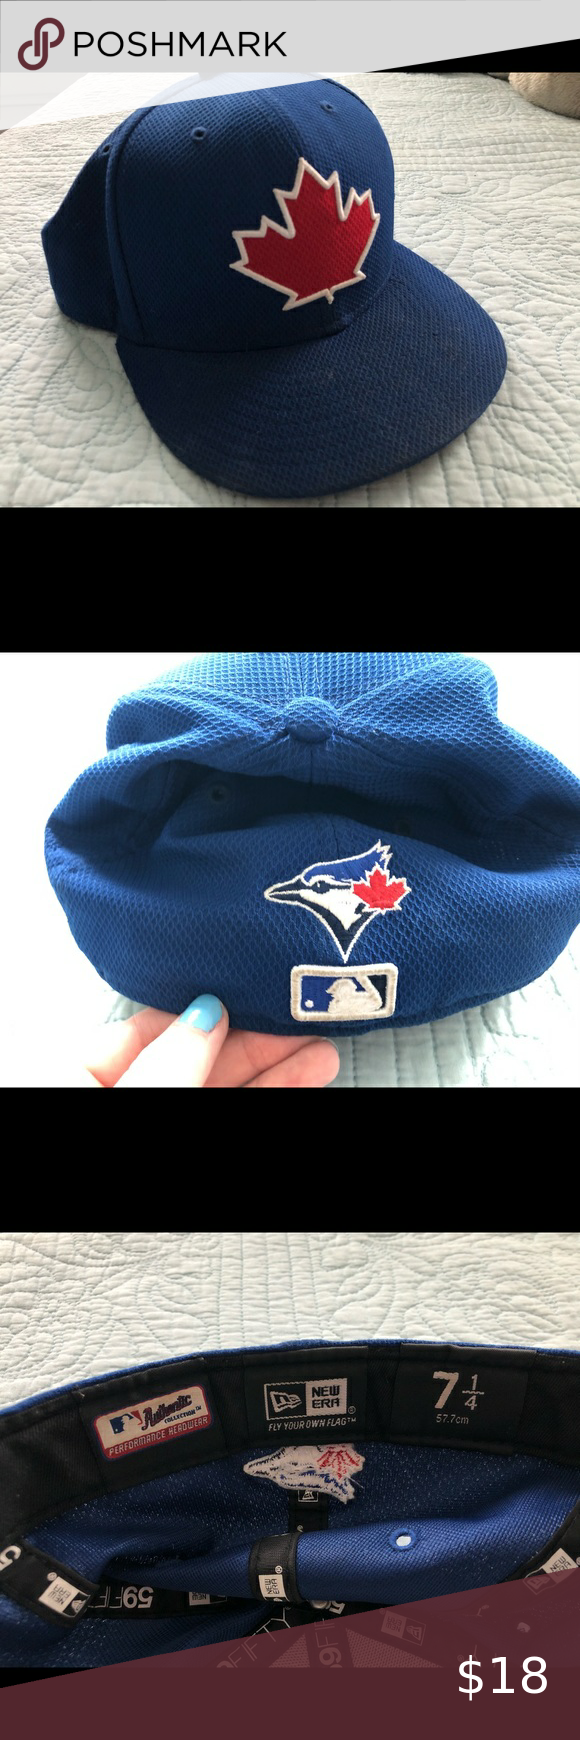 Blue Jays Hat Maple Leaf Logo On Front And Blue Jay On The Back Fitted 7 1 4 New Era Accessories Hats Hats Blue Maple Leaf Logo